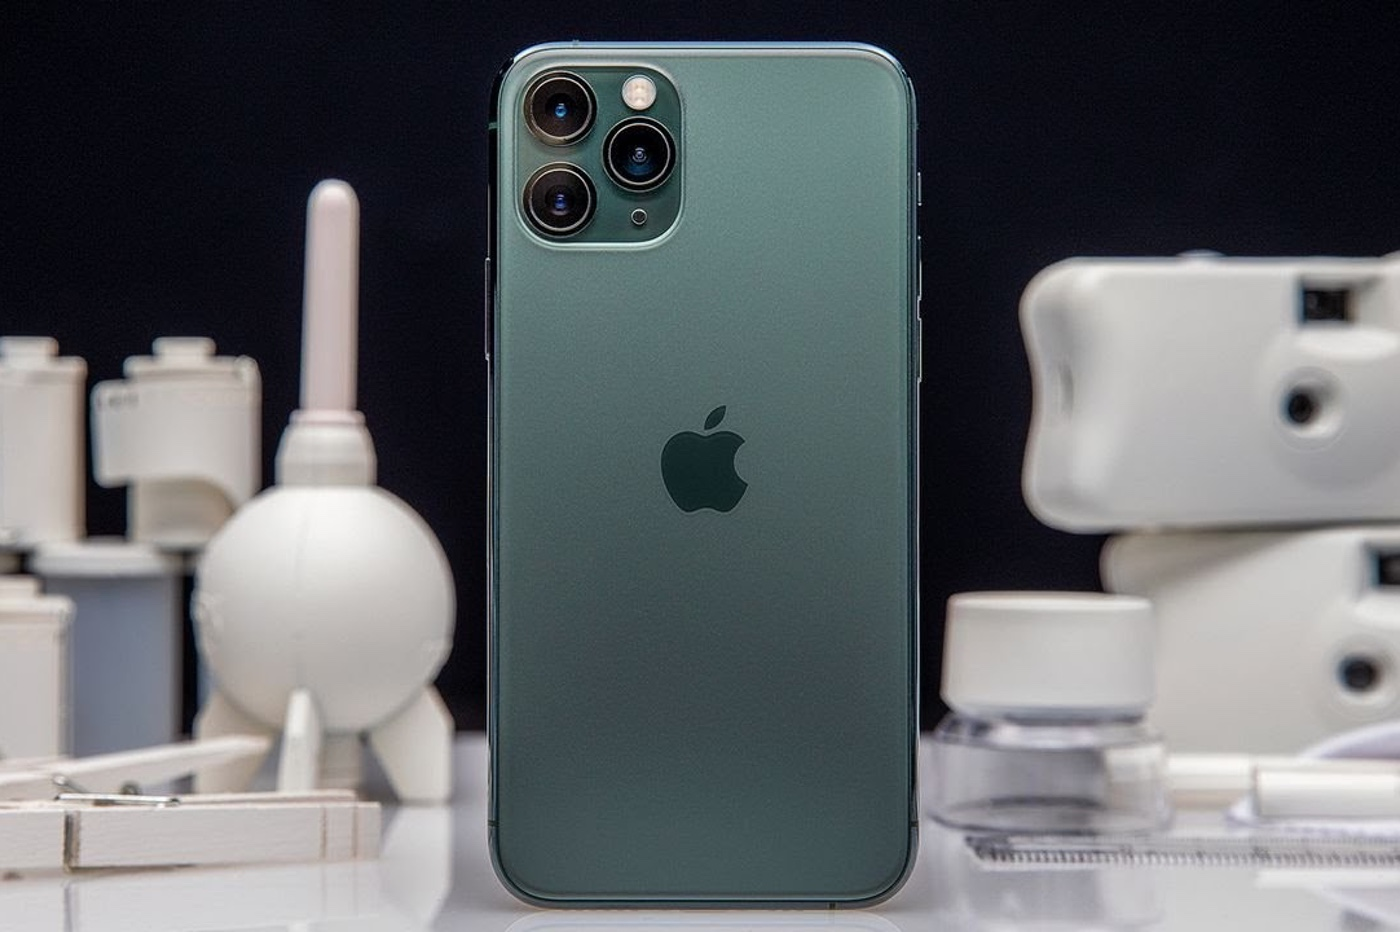 60 million dong for a unique 'deformed' iPhone 11 Pro 3